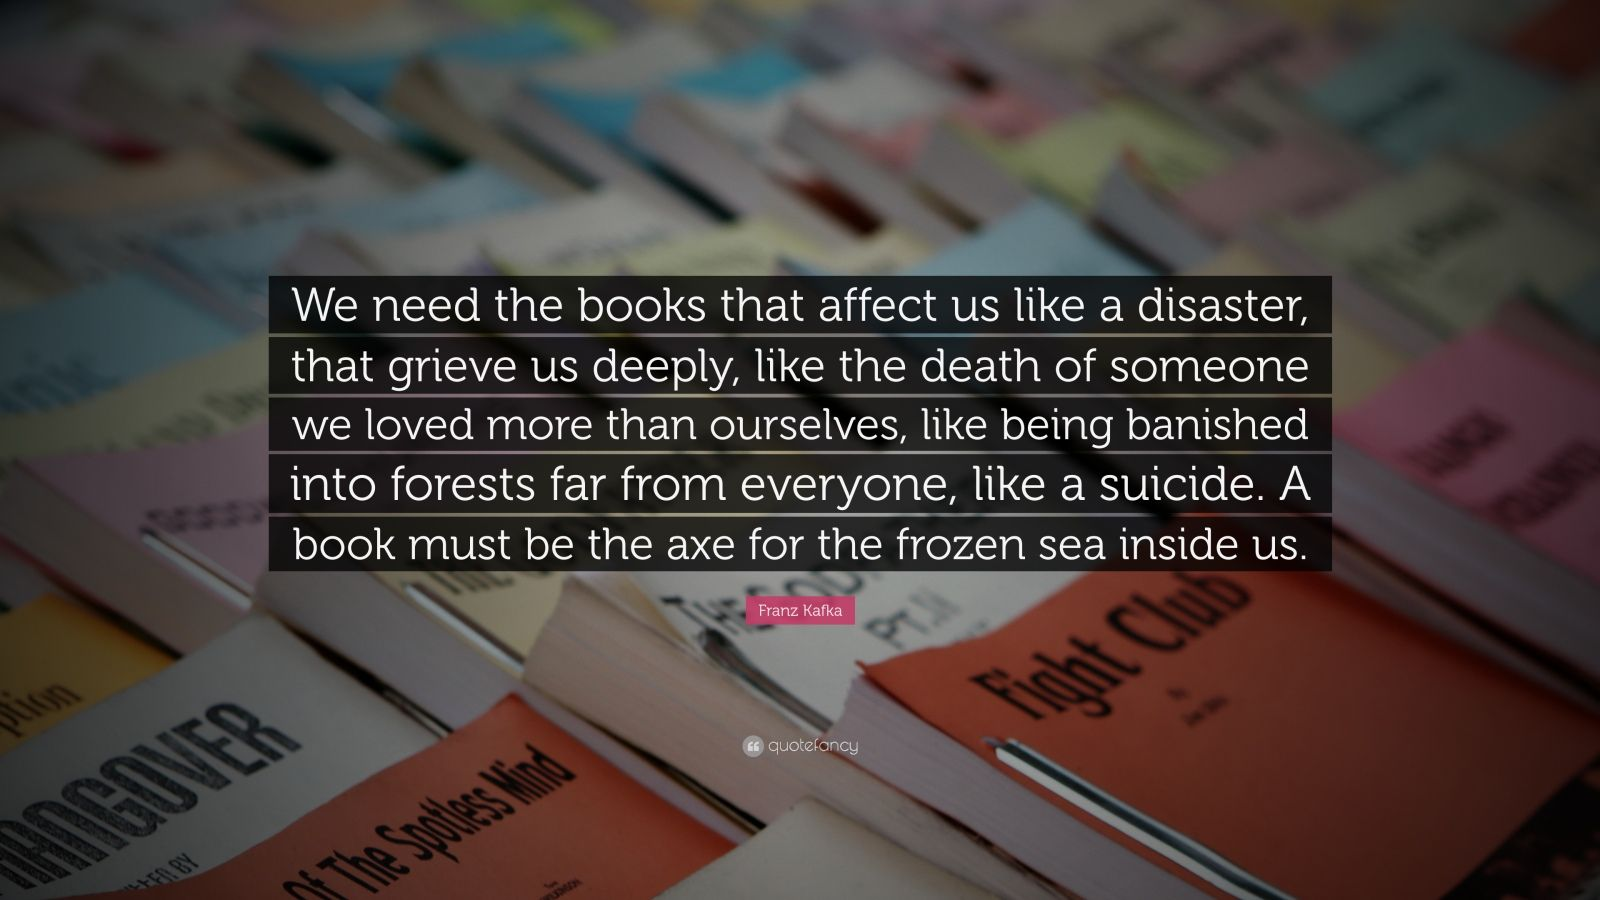 "Franz Kafka Quote: ""We need the books that affect us like a disaster, that grieve us deeply, like the death of someone we loved more than ourselves, like being banished into forests far from everyone, like a suicide. A book must be the axe for the frozen sea inside us."""